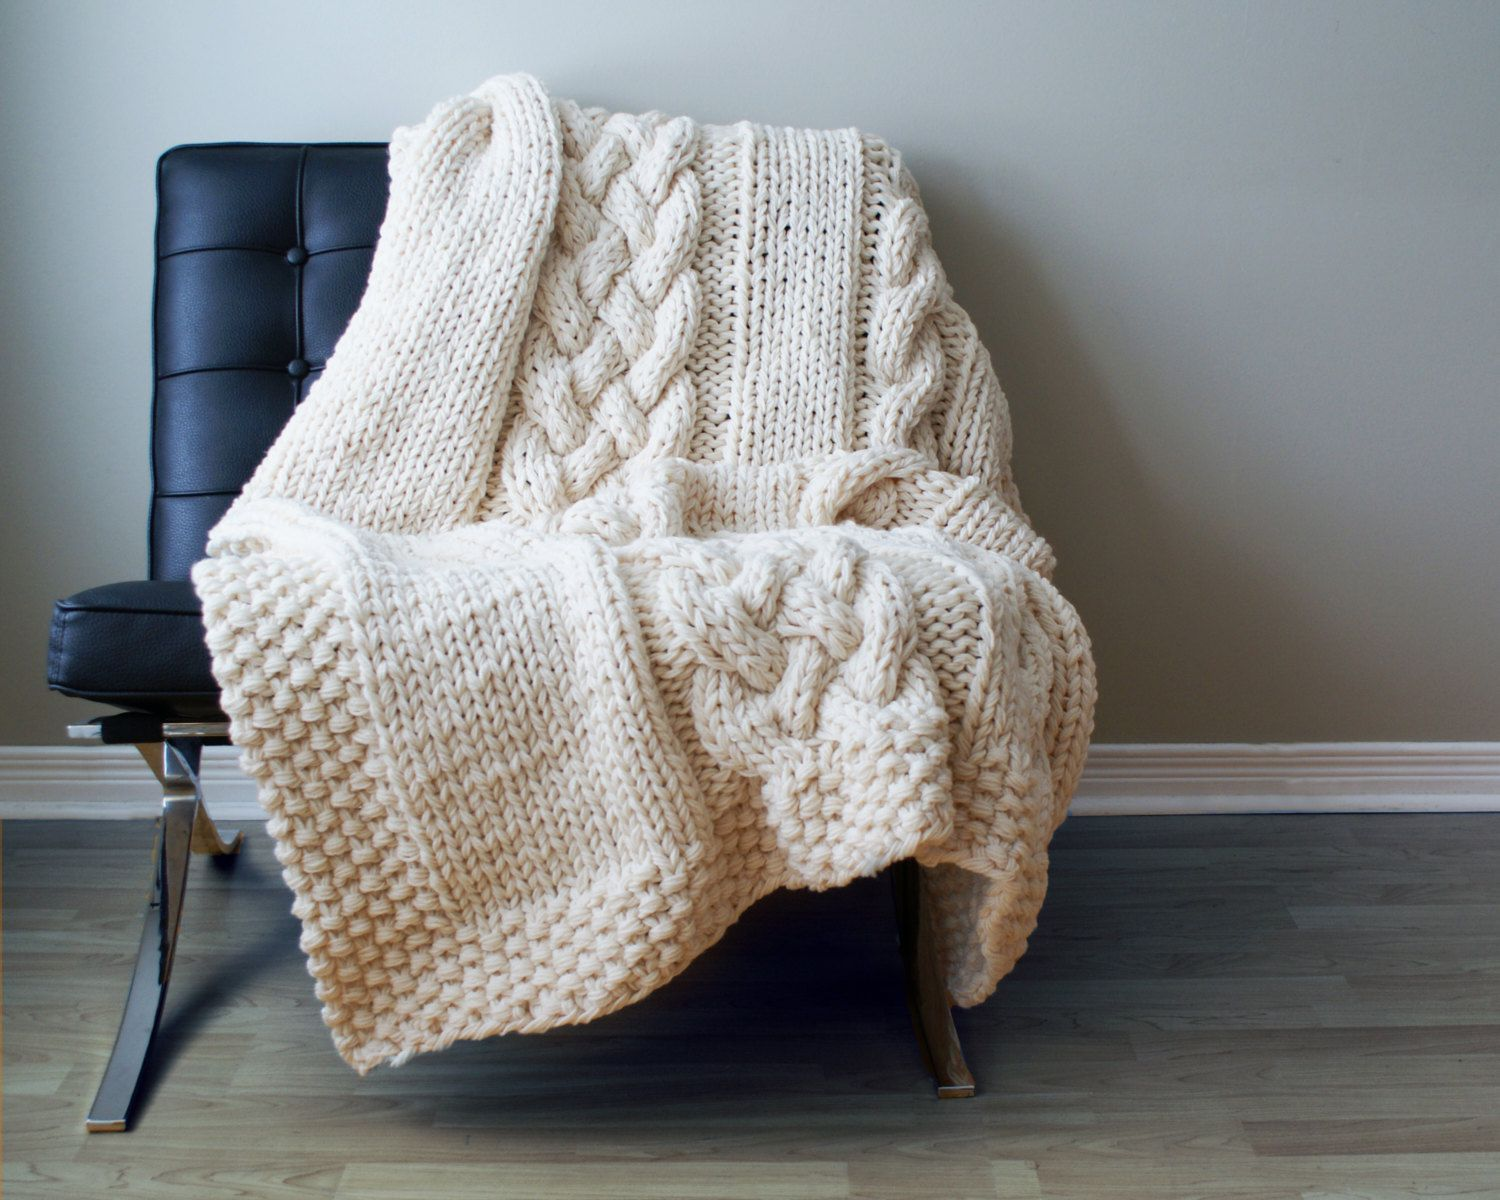 throw blanket - Google 검색 | Knitting | Pinterest | Patrones de ...